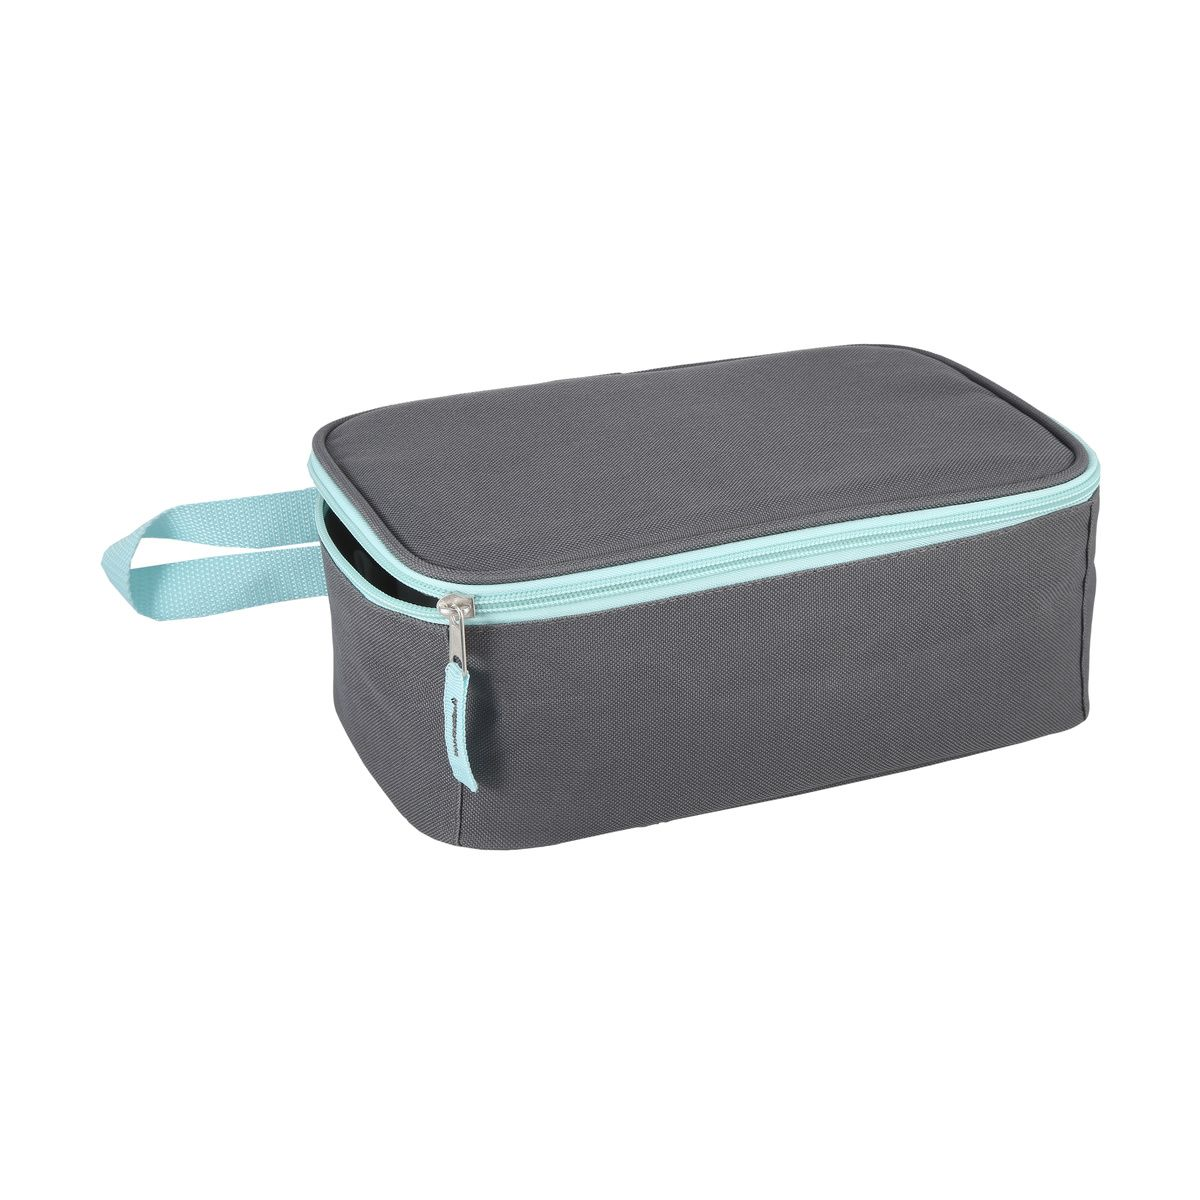 Basic Cold Box Blue Kmart Outdoor ottoman, Outdoor